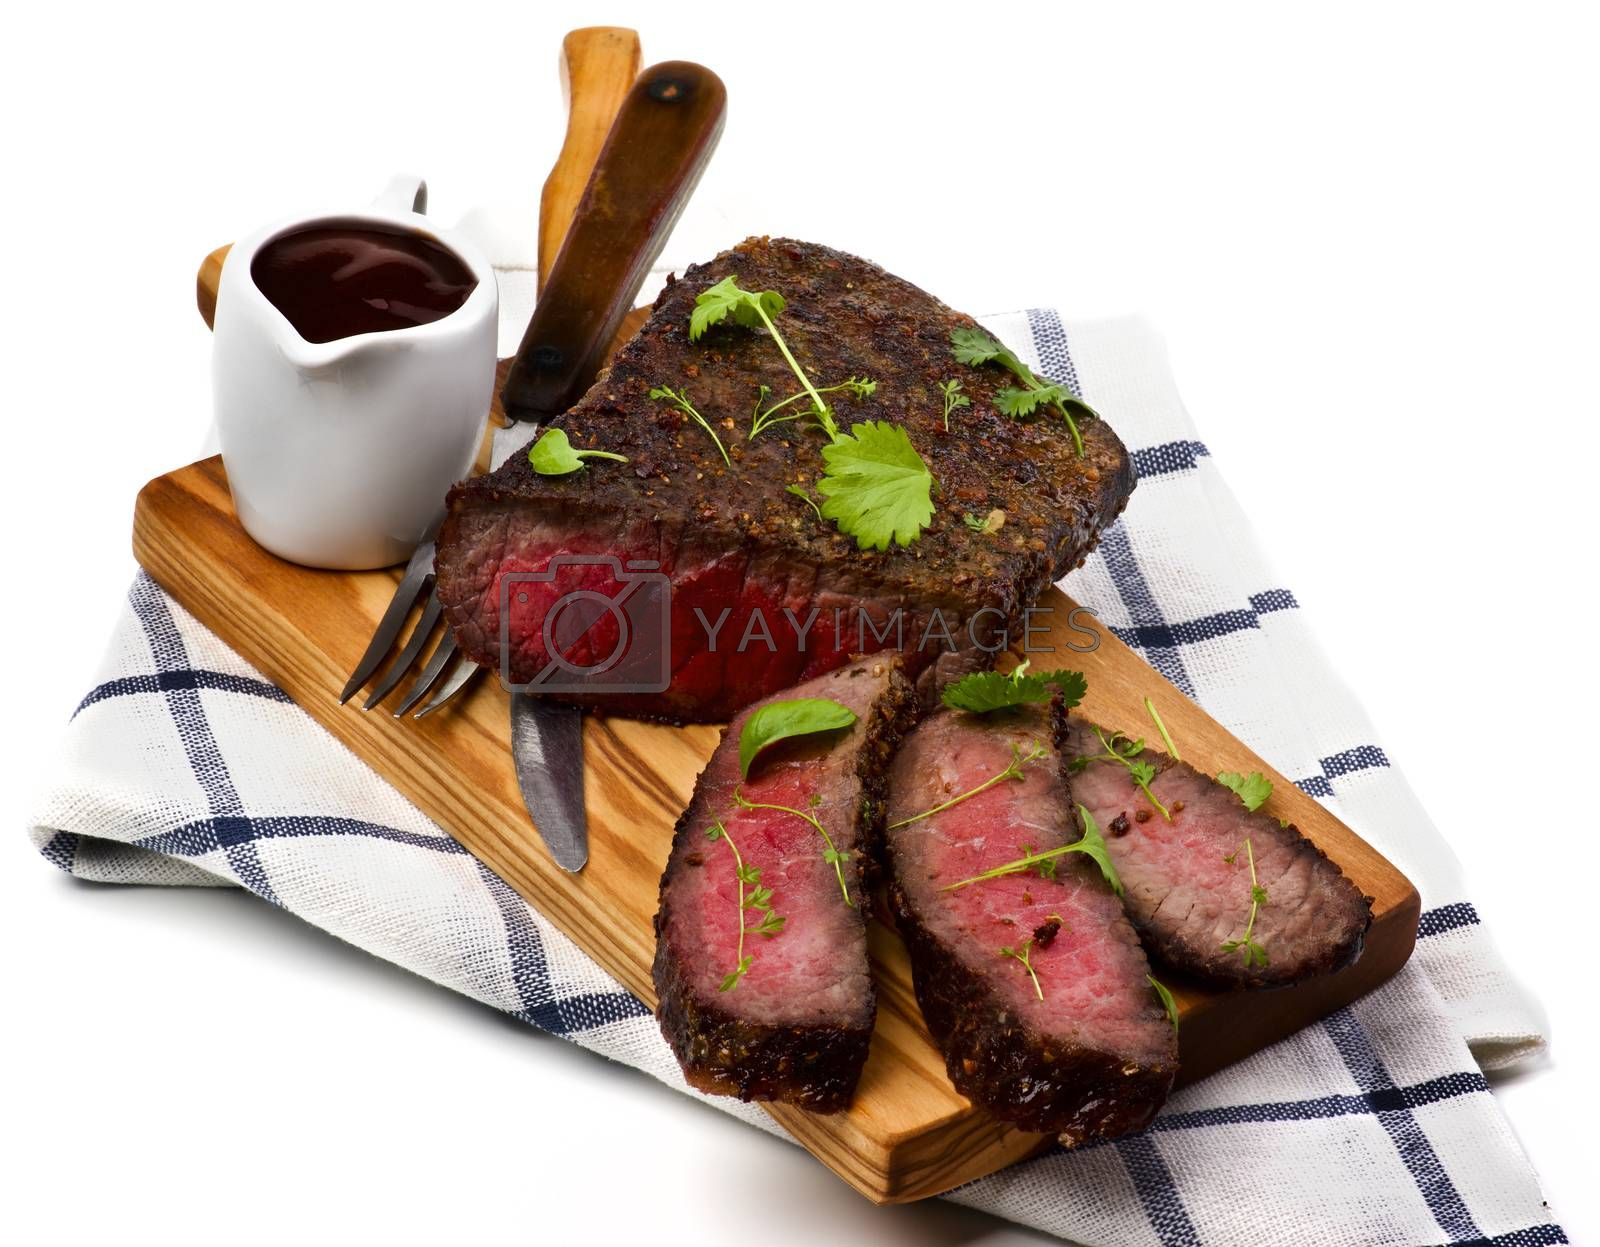 Delicious Roast Beef Medium Rare Sliced on Wooden Cutting Board with Tomato Sauce, Fork and Table Knife on Checkered Napkin closeup on White background